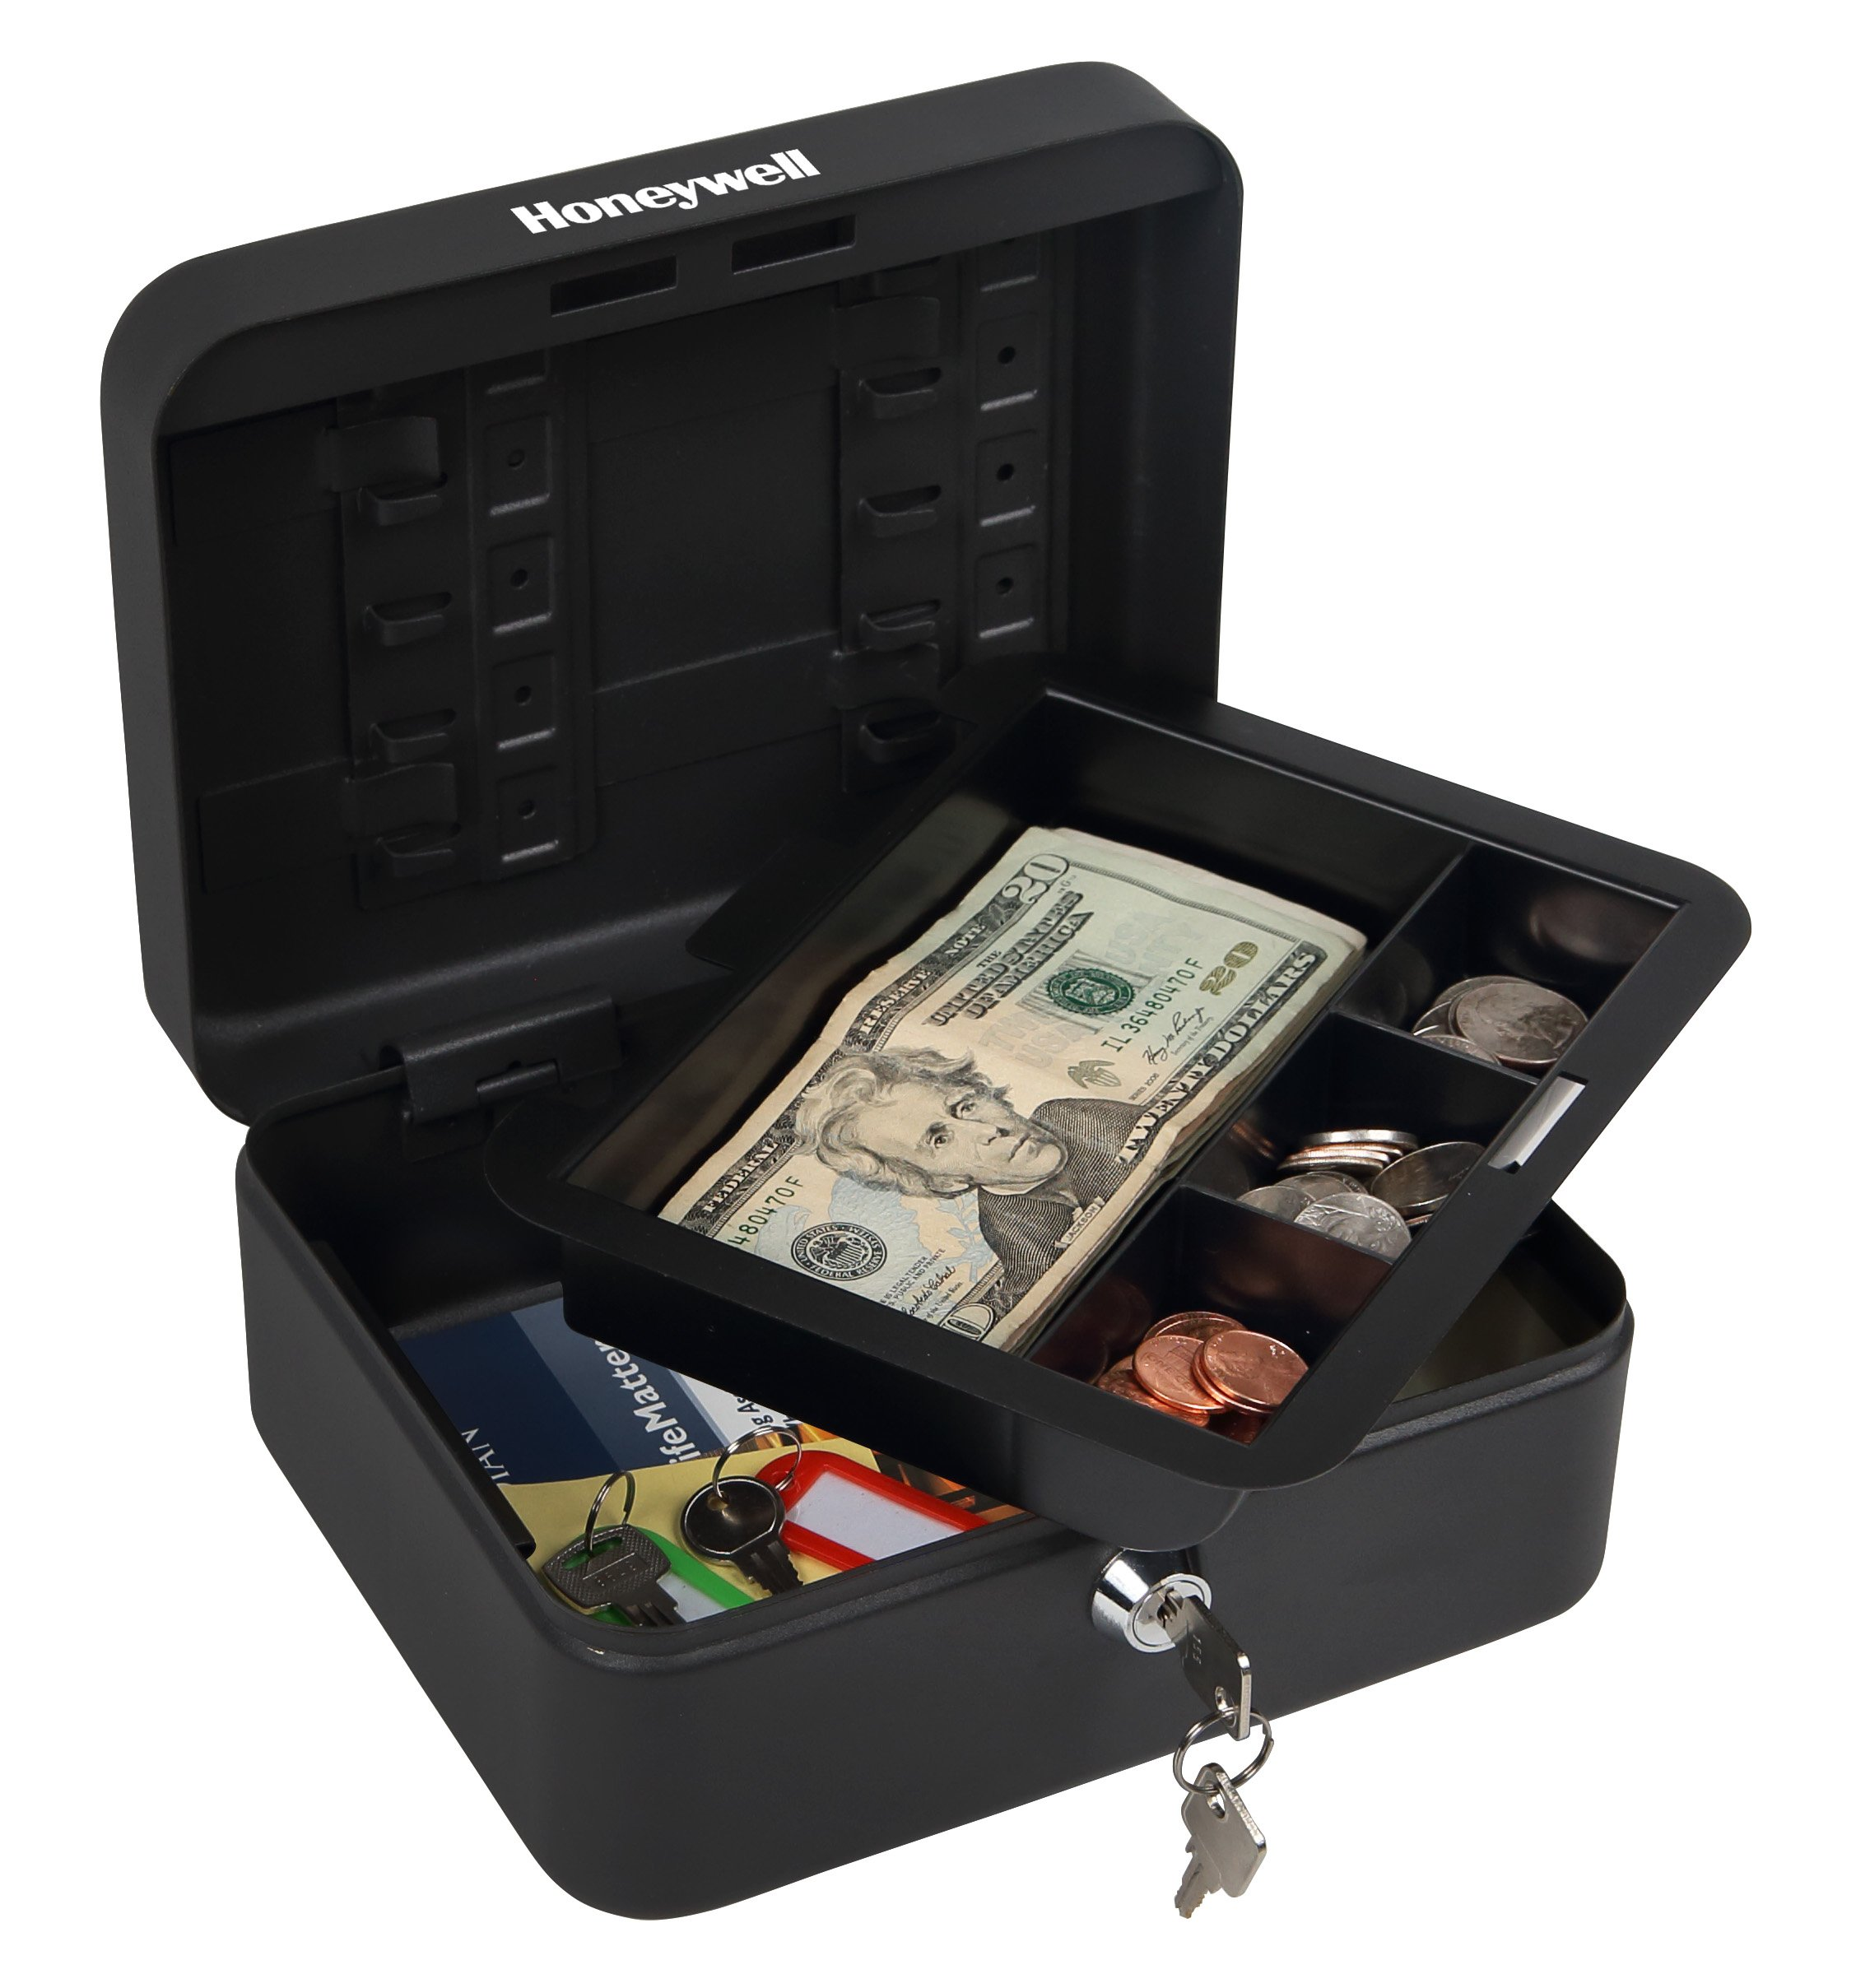 HONEYWELL - 6111 Convertible Steel Cash and Security Box with Key Lock, Black